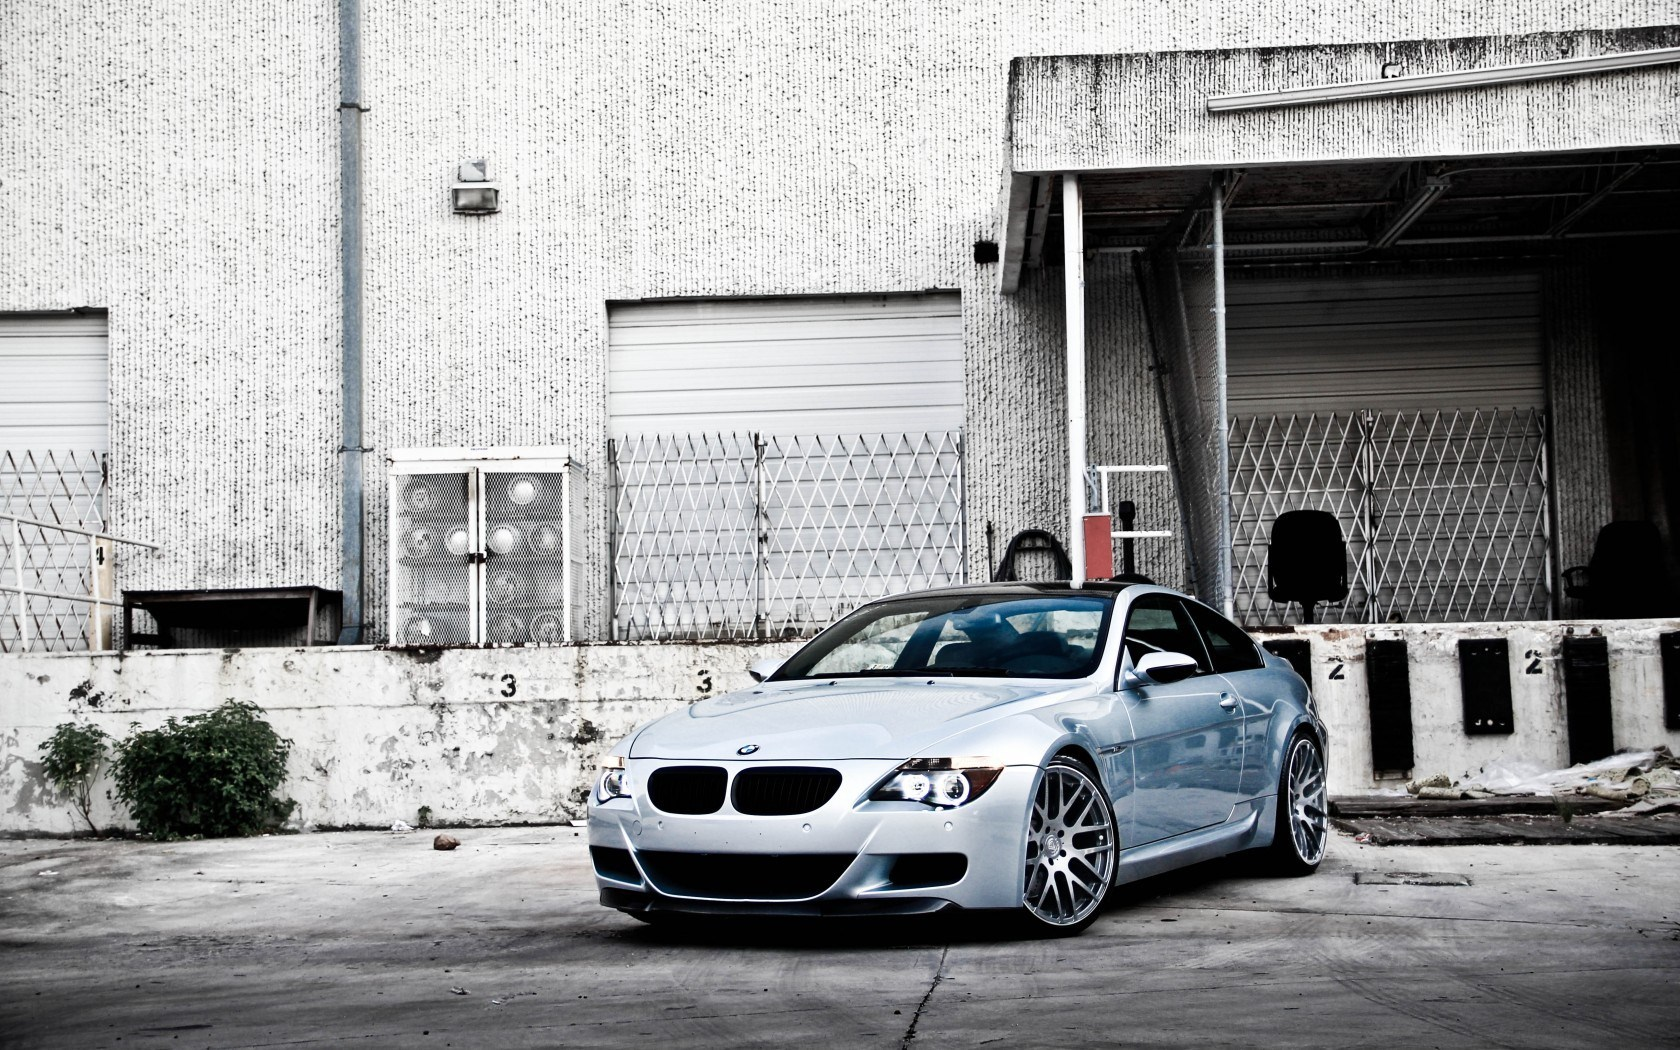 BMW M6 Silver Amazing Photo